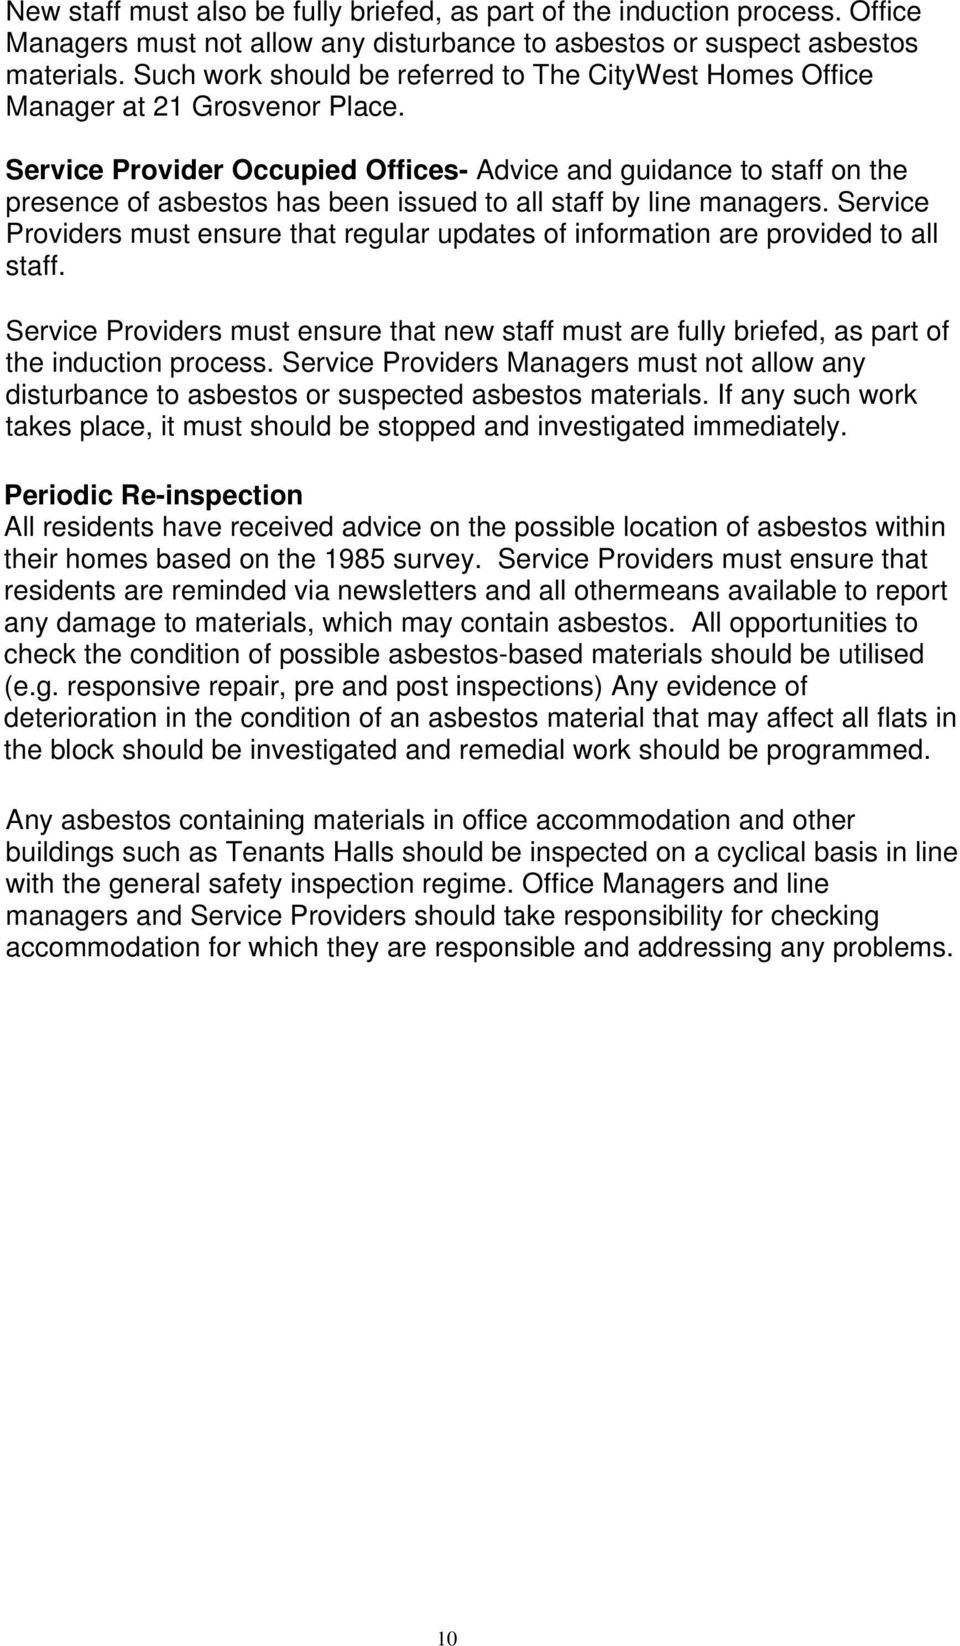 Service Provider Occupied Offices- Advice and guidance to staff on the presence of asbestos has been issued to all staff by line managers.